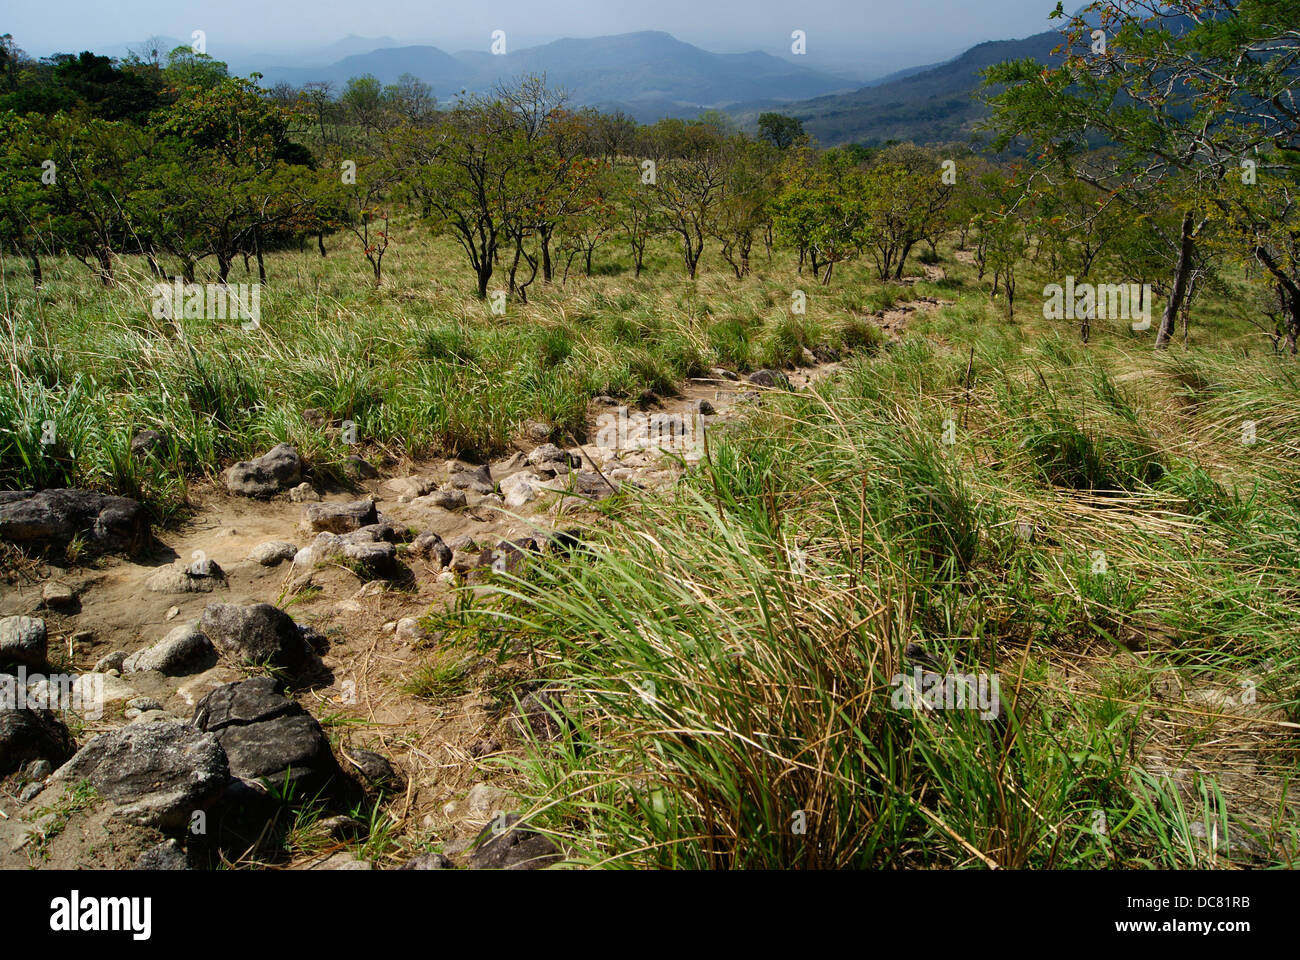 Western Ghats Forest Valleys and Jungle Trekking Paths at Agastyarkoodam hills , Kerala, India - Stock Image